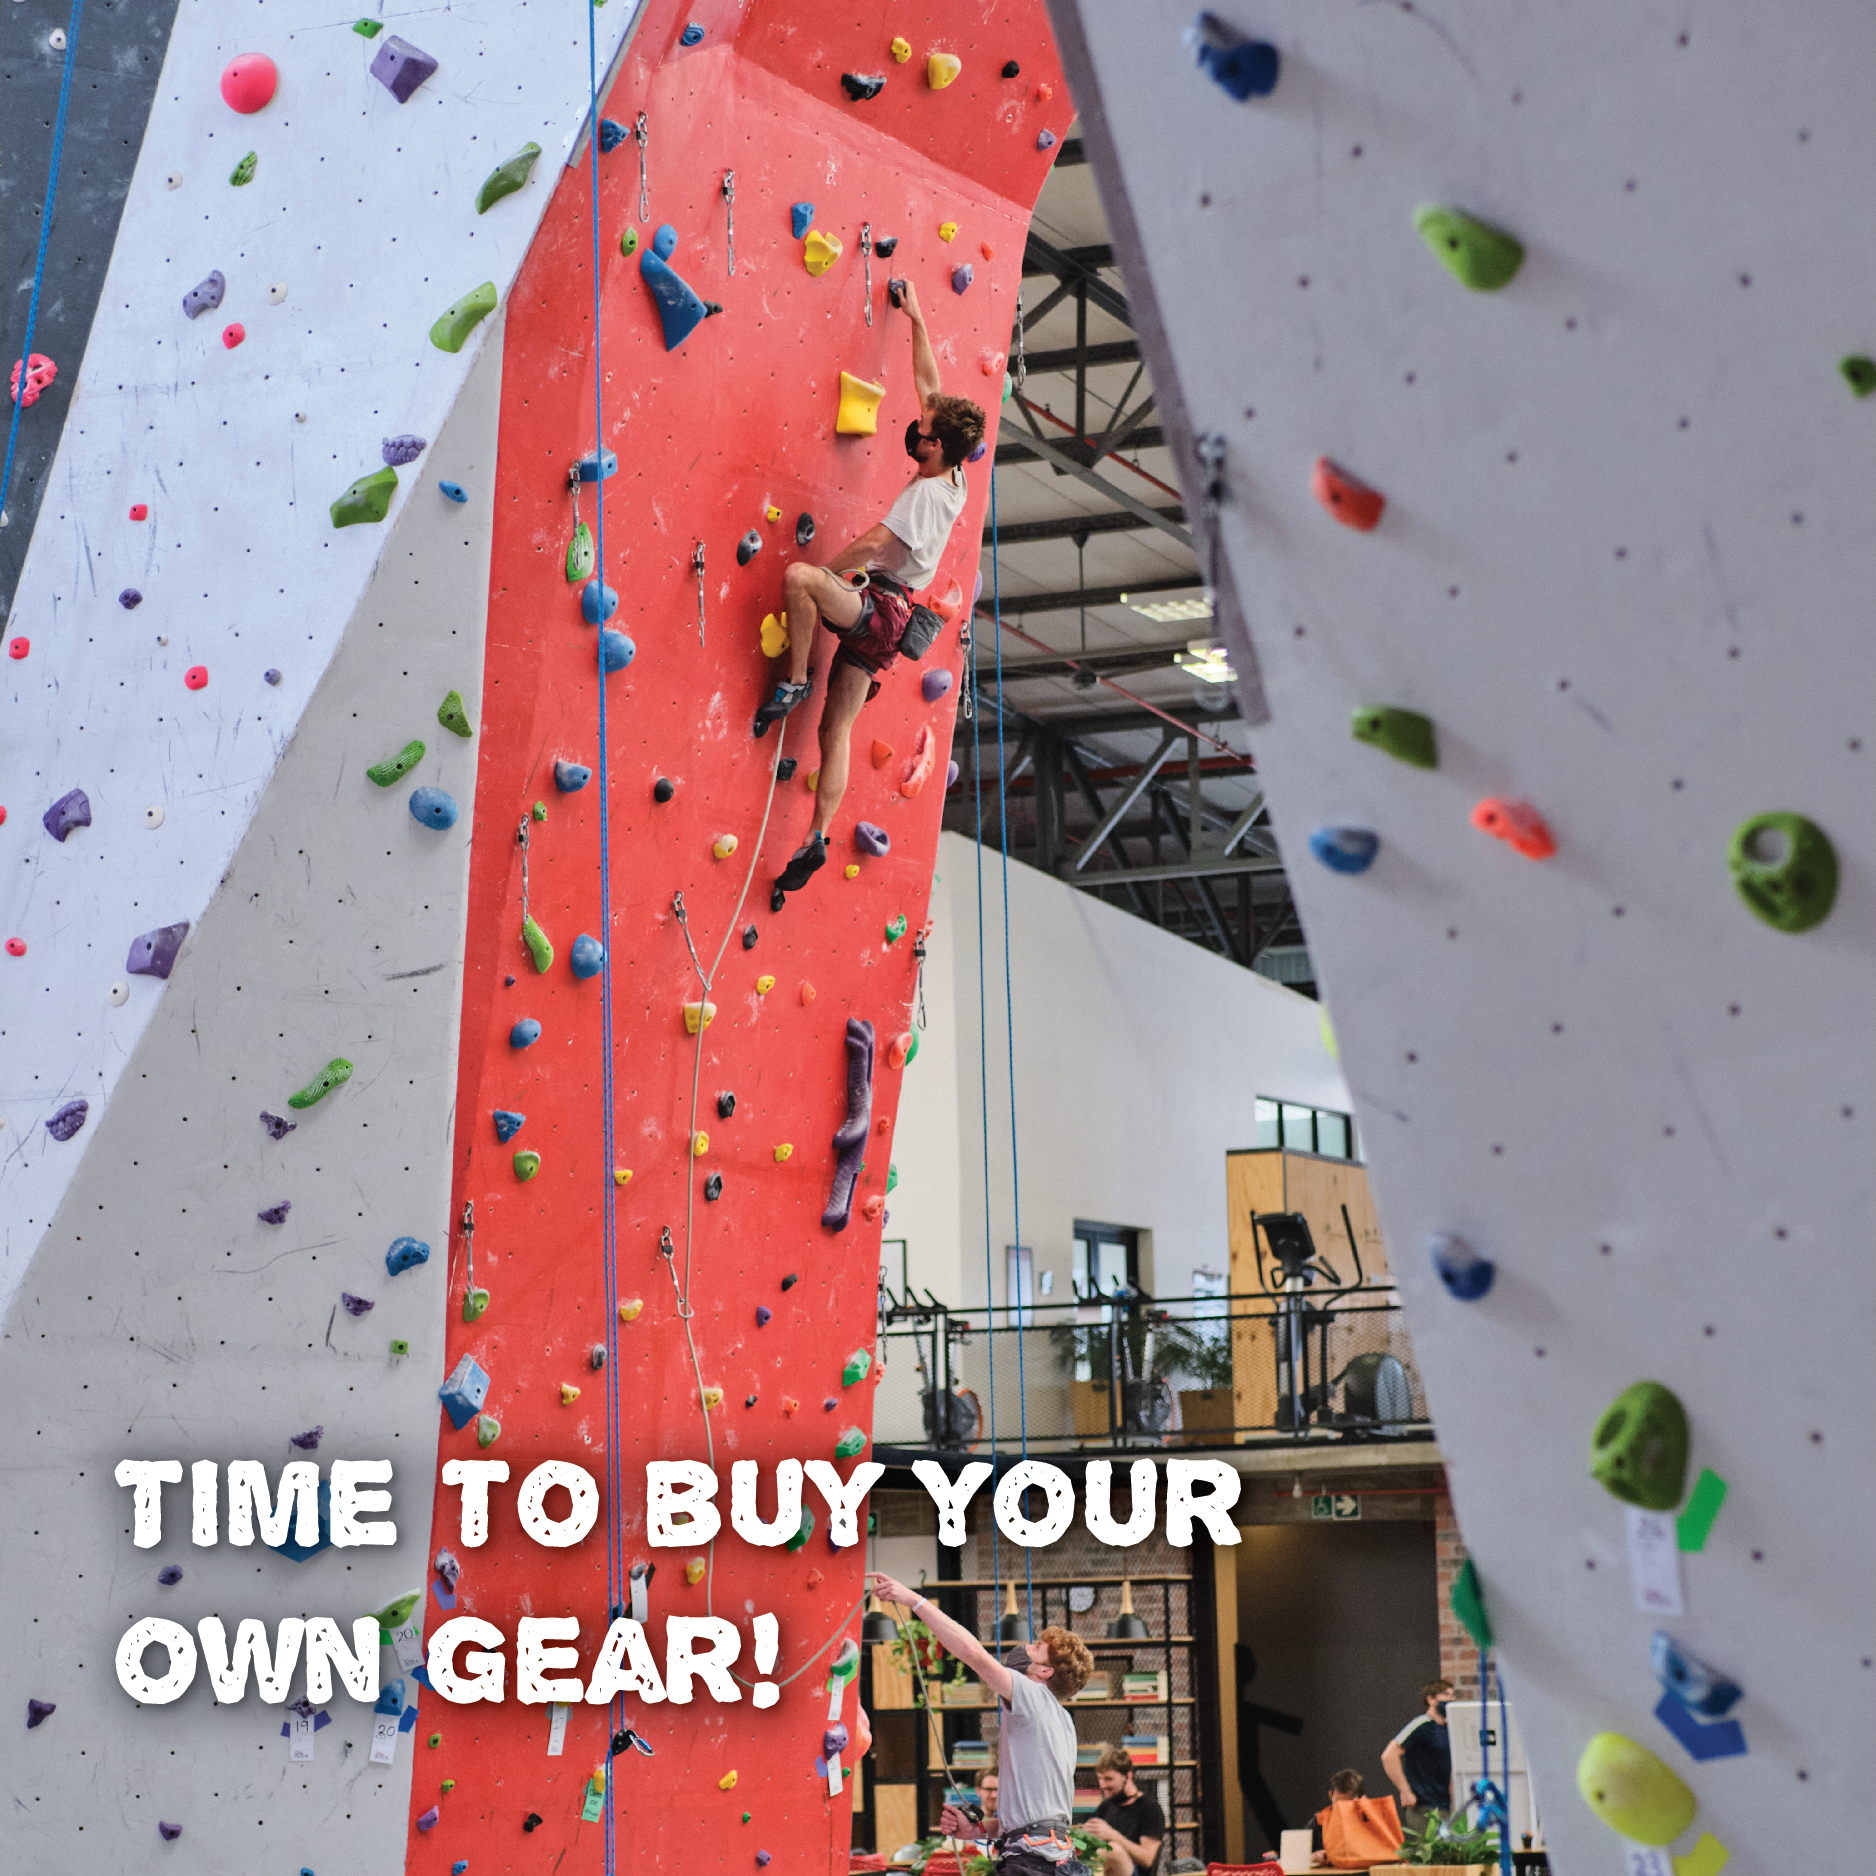 Time to buy your own gear!